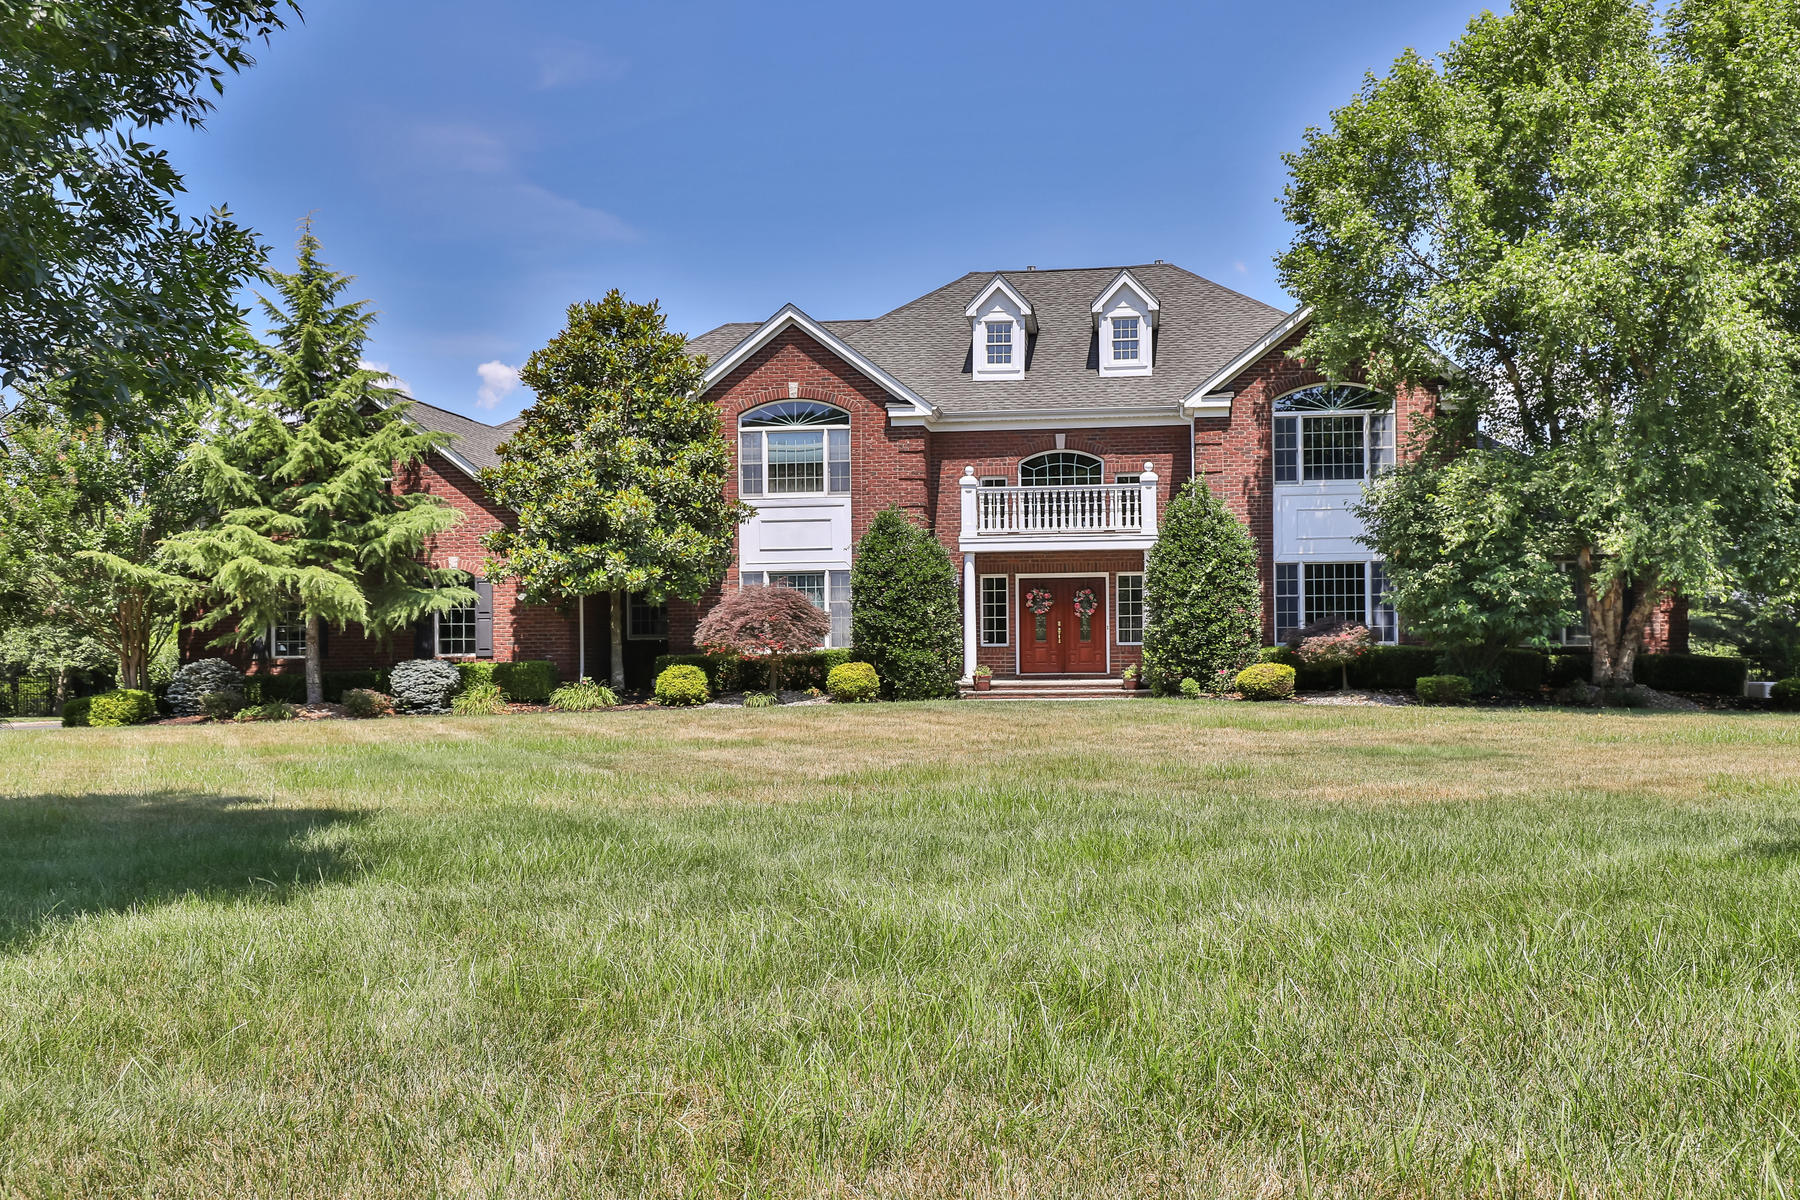 Single Family Home for Sale at Spectacular Estate 24 Hillcrest Drive, Colts Neck, New Jersey 07722 United States